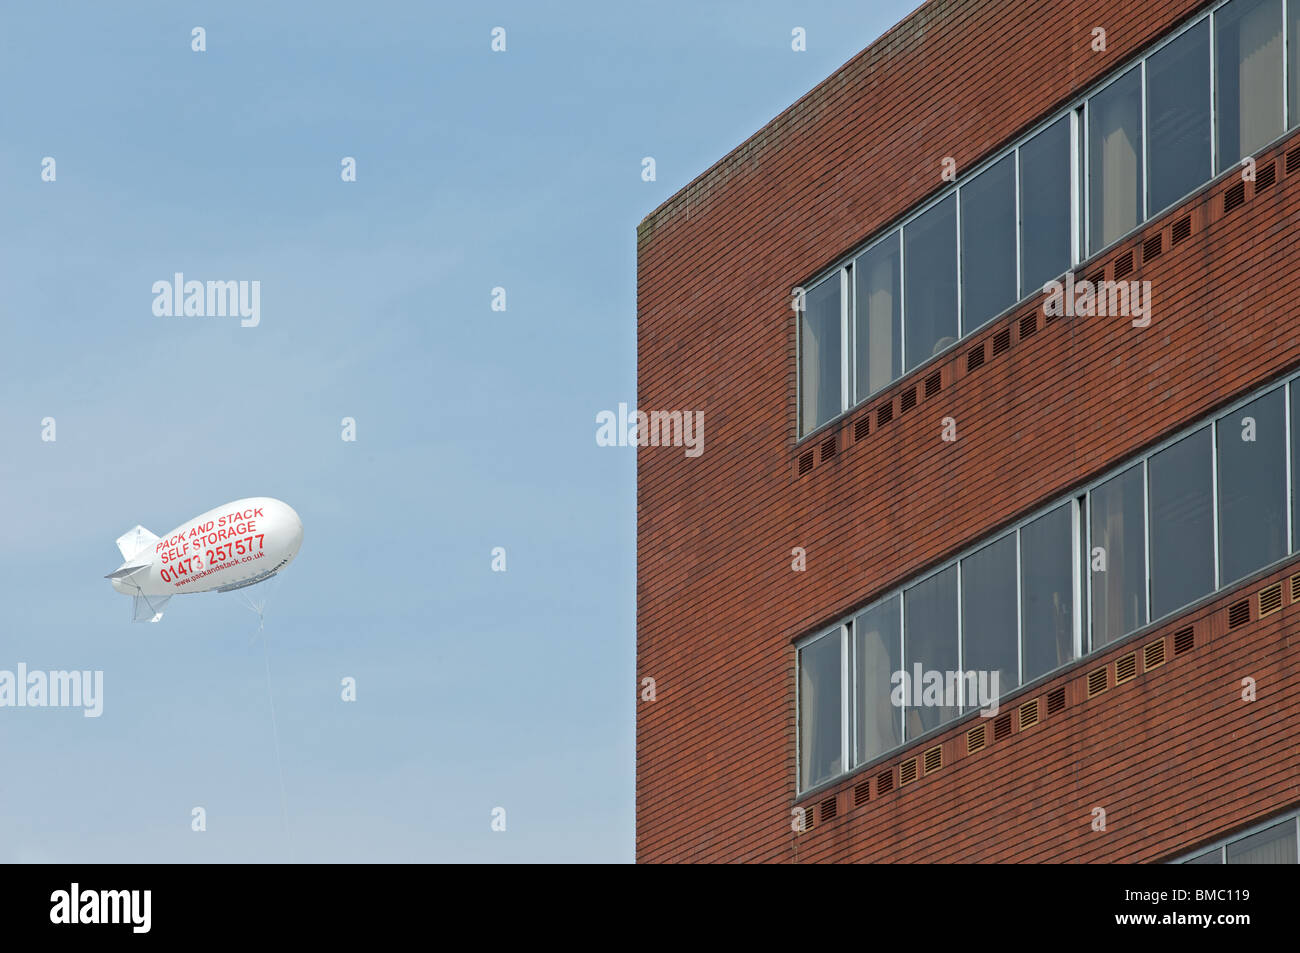 Advertising blimp for Pack and Stack, a self storage company - Stock Image